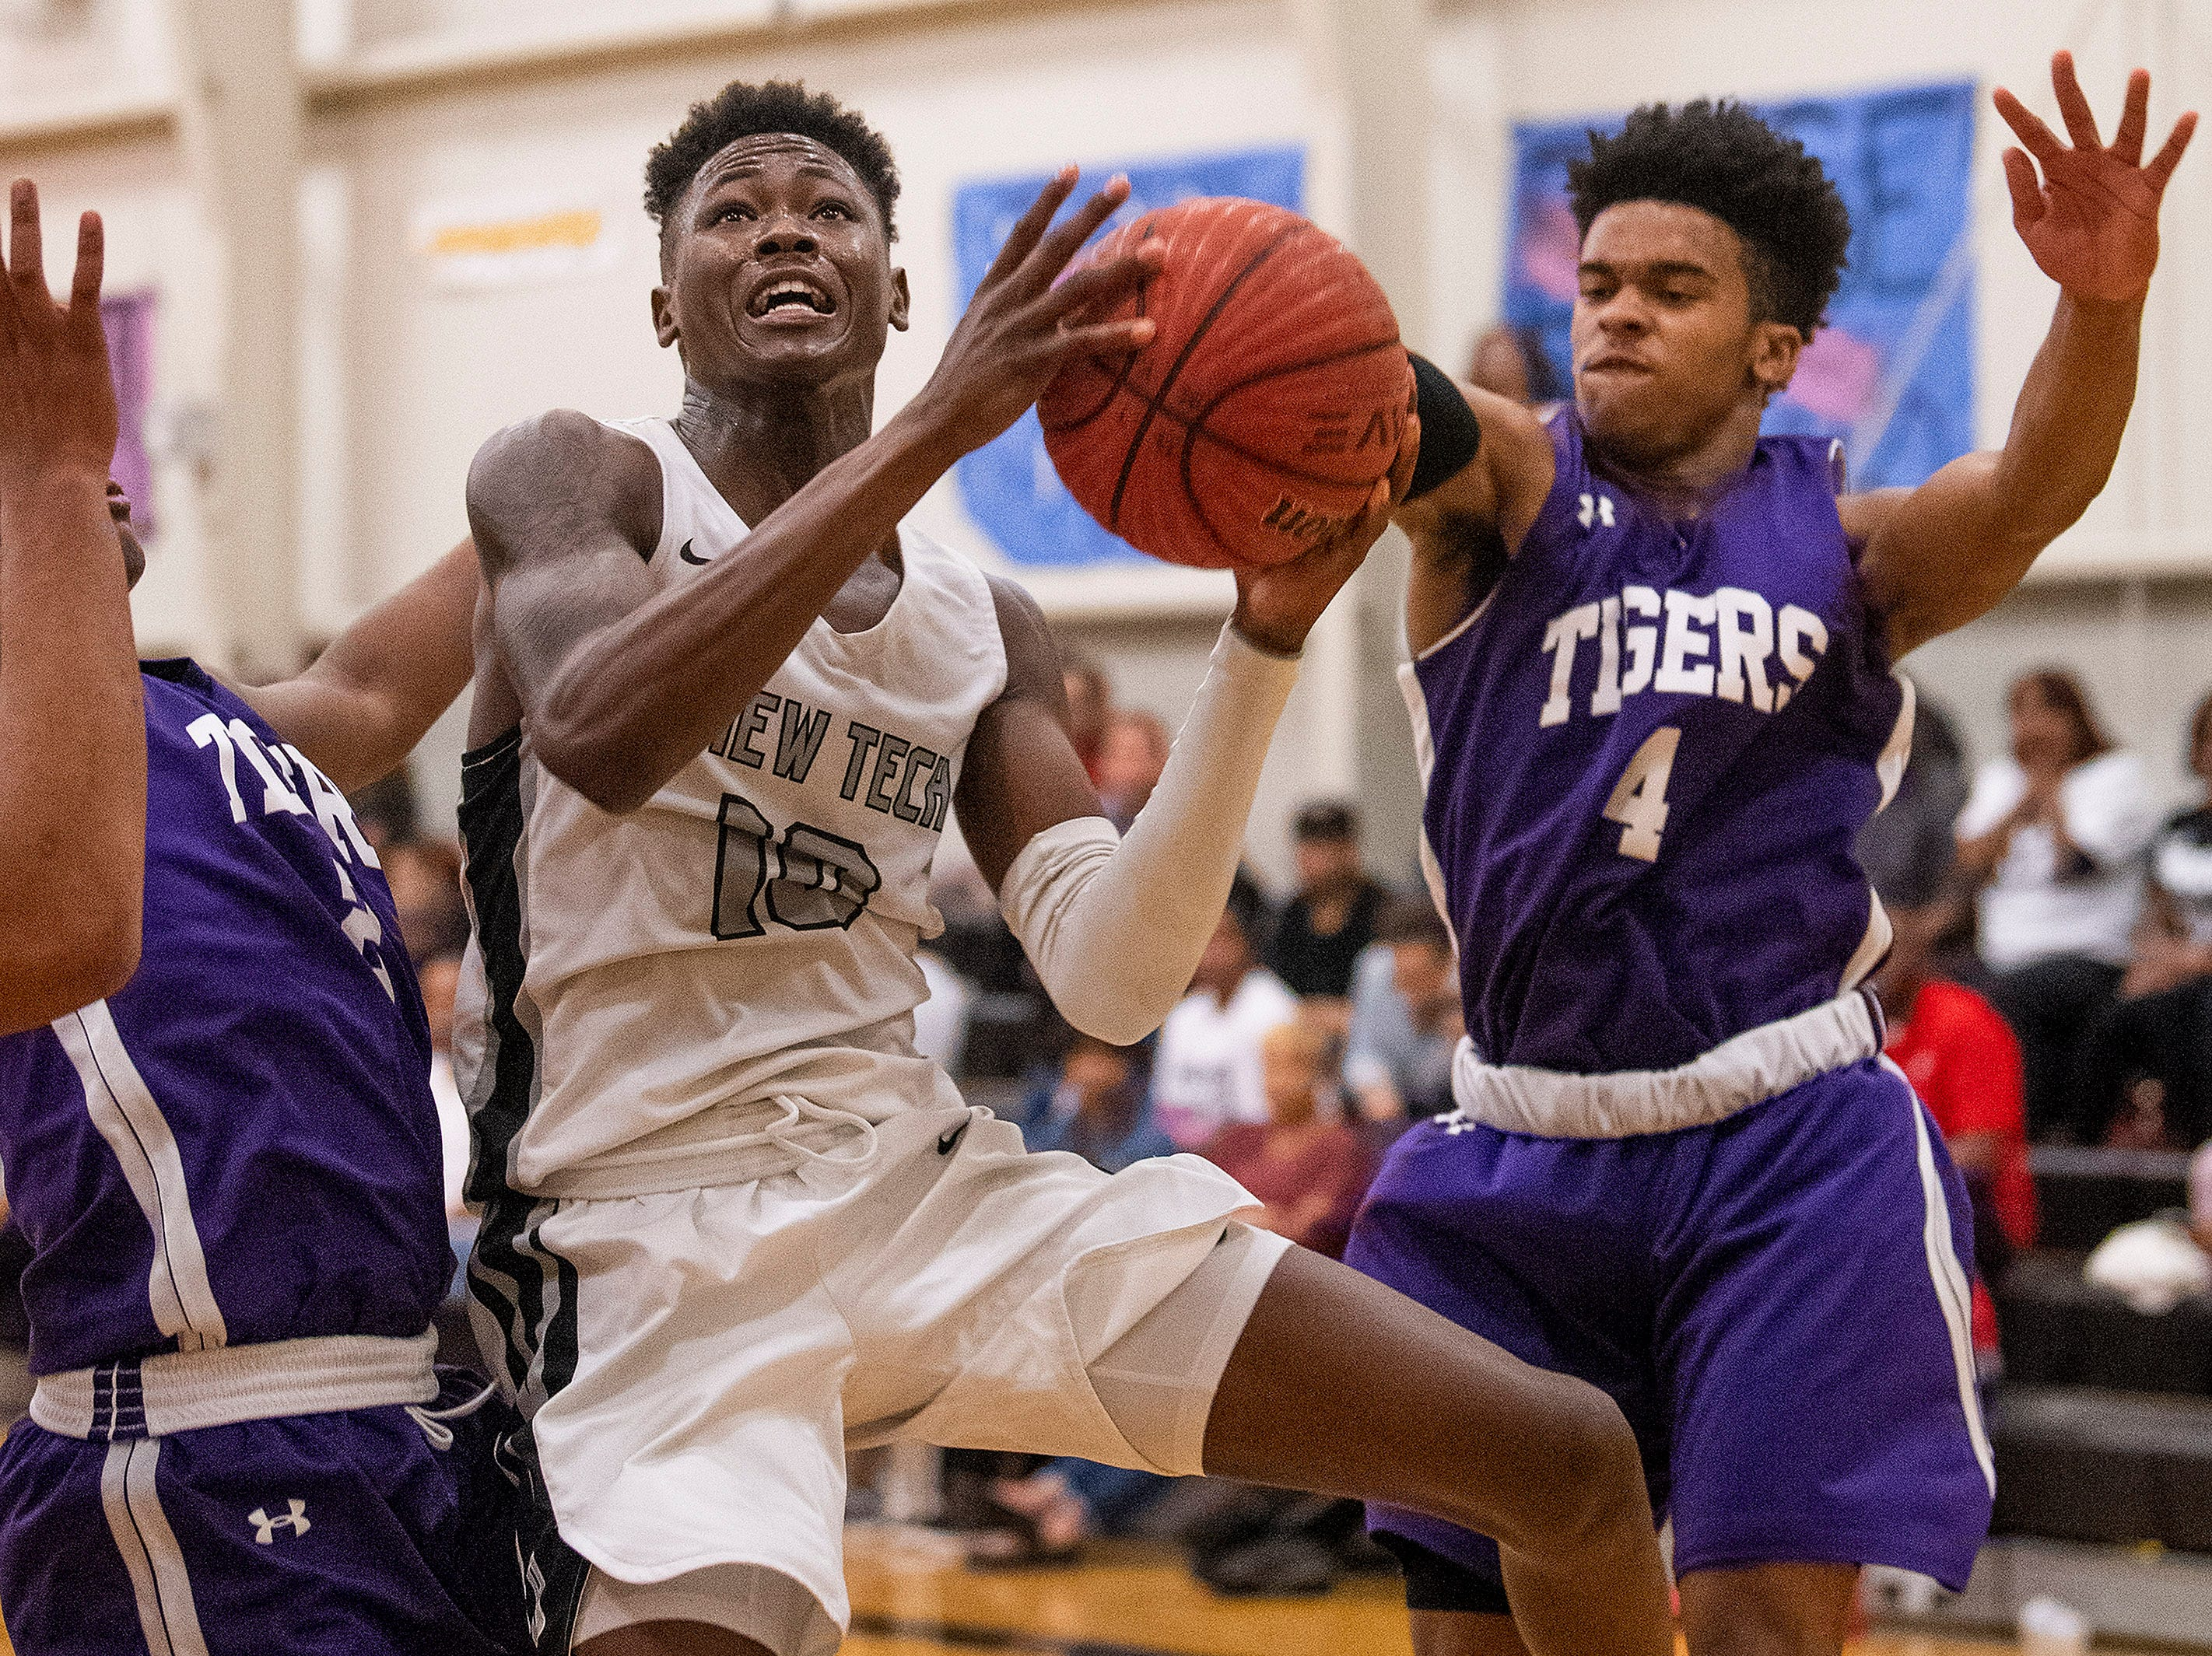 Brewbaker Tech's Desmond Williams (10) goes to the goal against Tallassee at the BrewTech campus in Montgomery, Ala., on Thursday February 7, 2019.